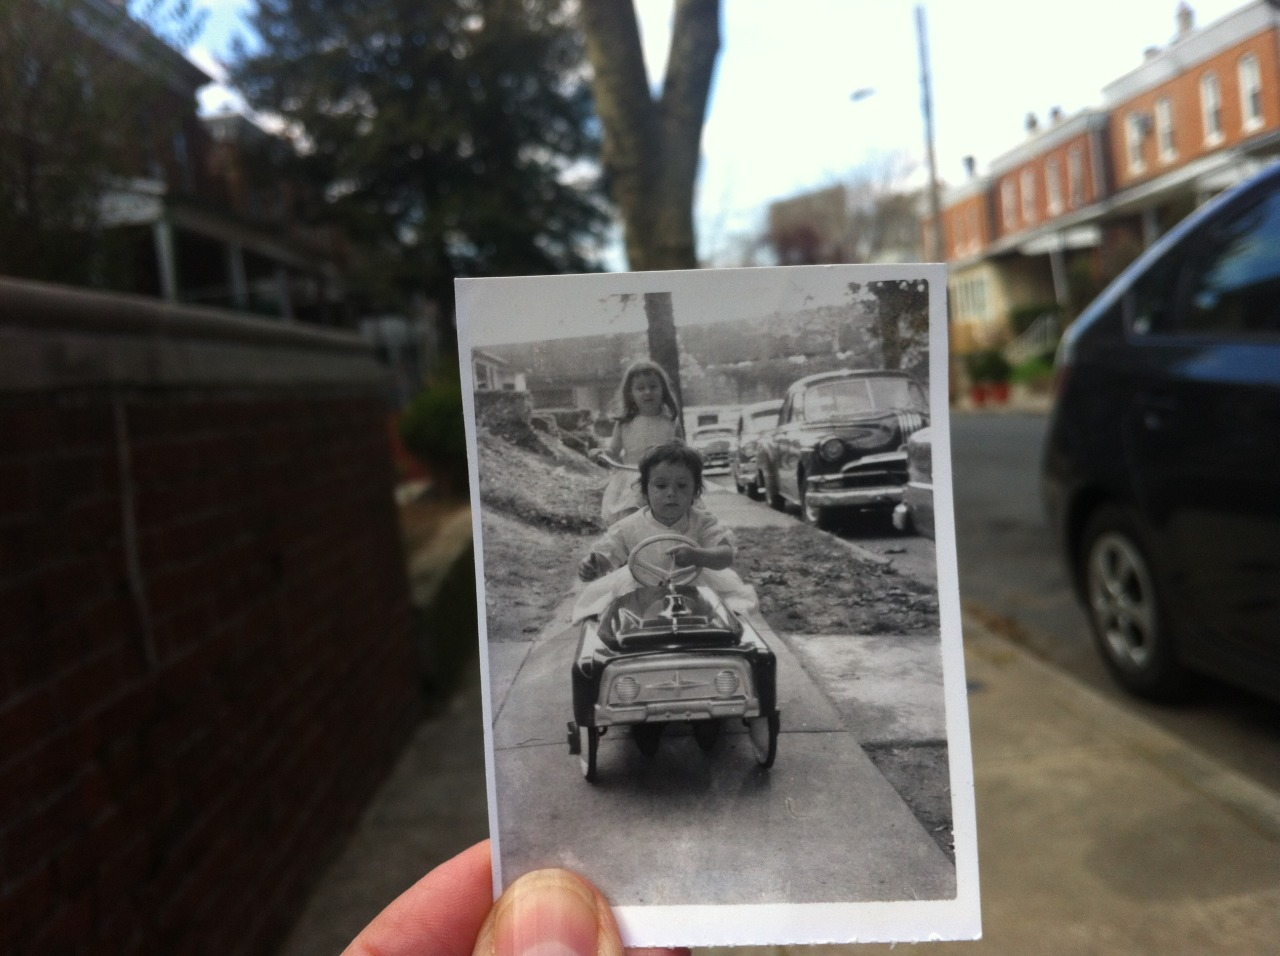 Dear Photograph,I traveled with you  2,807 miles to a street in Philadelphia where we took an imaginative leap back 52 years, 2 months and 3 days to my 4th birthday with my friend, Jenny. Having been away a long time, I didn't recognize much, but the determined girl peddling the fire truck is still me.  Ring the bell, she's on a mission!Cindy